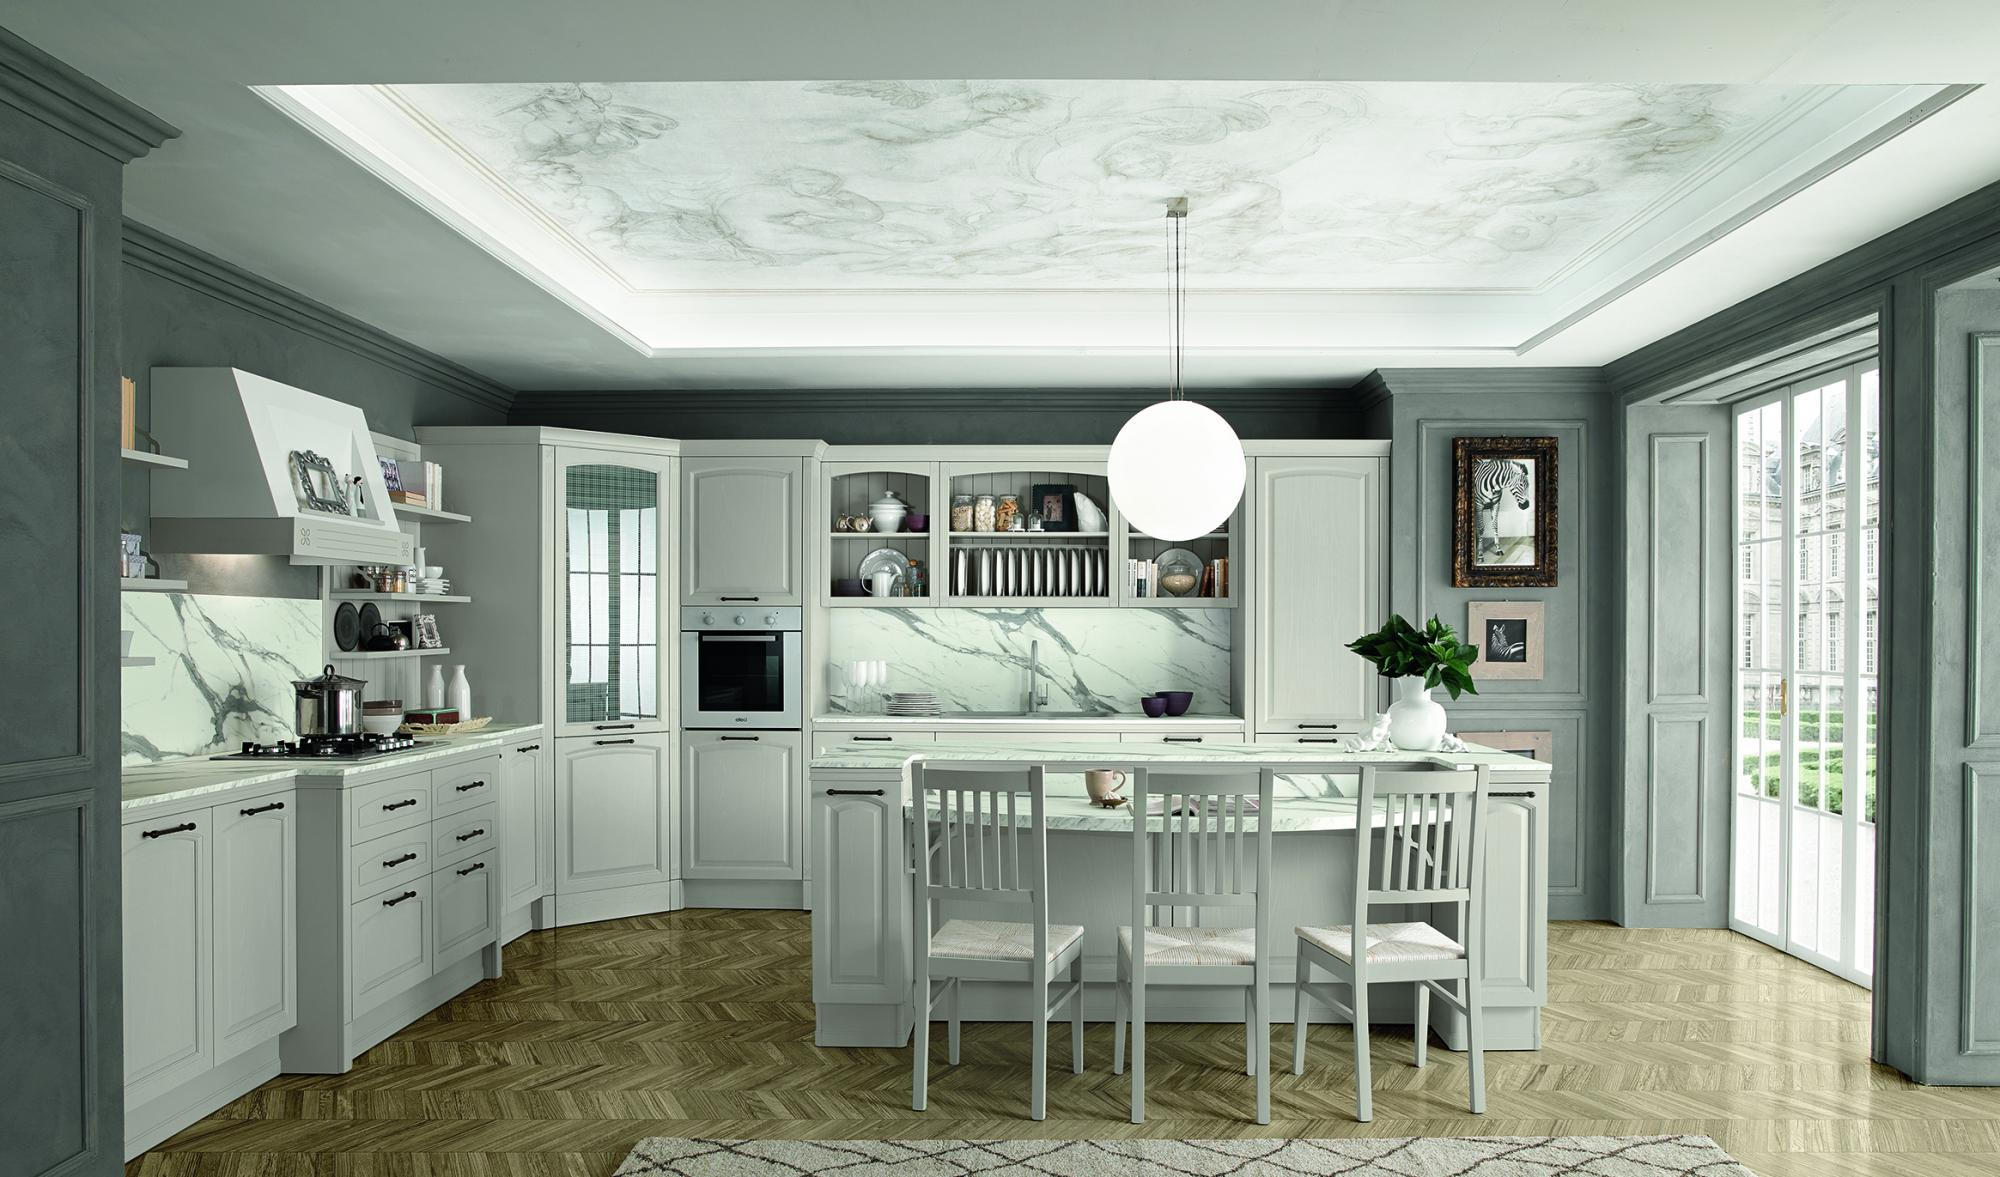 Mida - Kitchens - Classic Kitchens - Colombini Casa - White - White marble